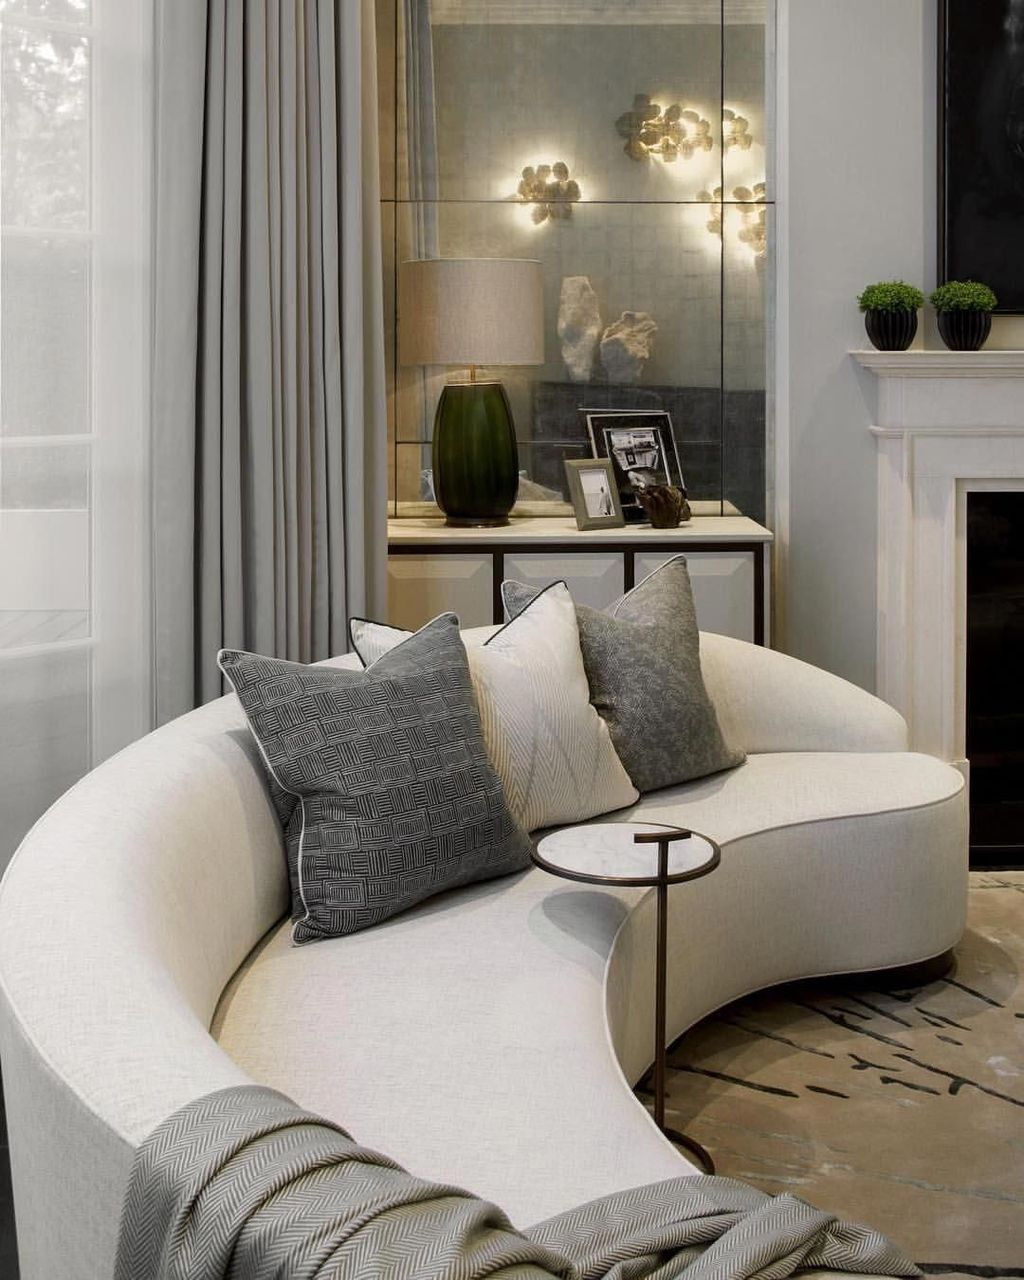 The Best Curved Sofa For Living Room Layout Ideas 14